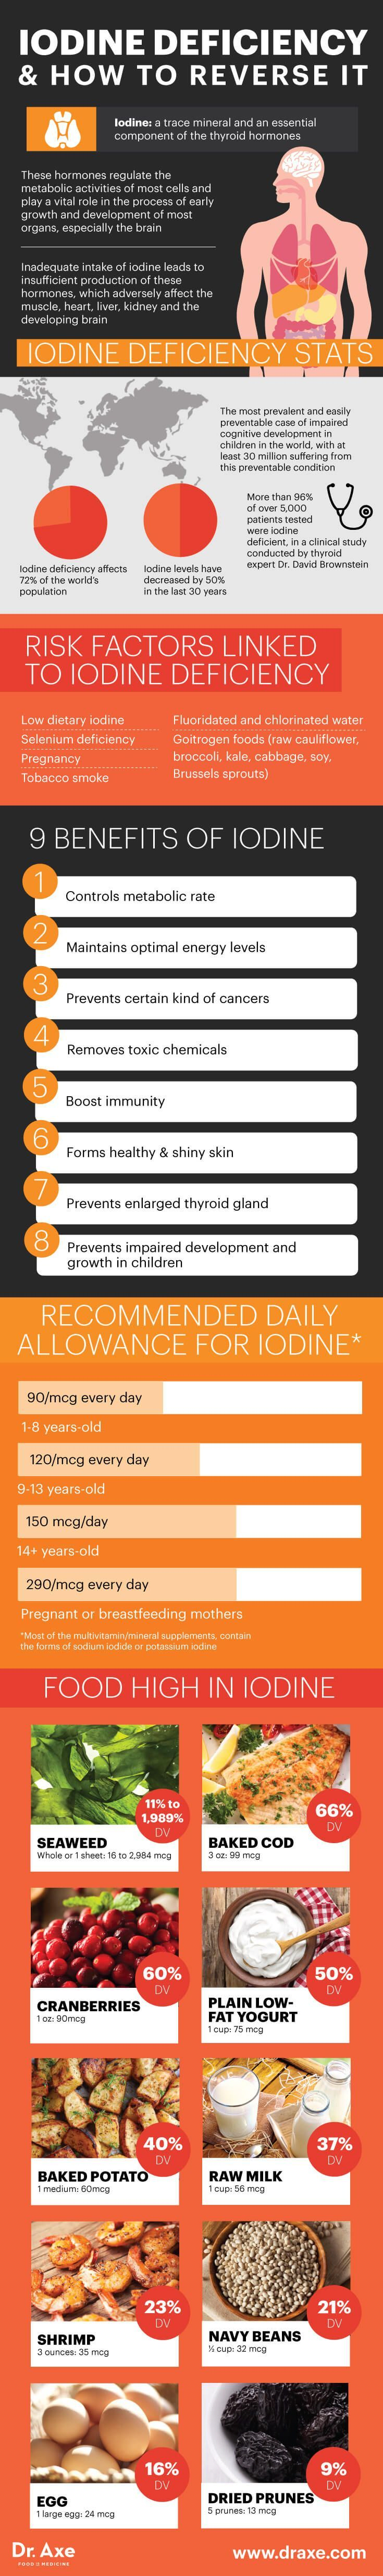 The Iodine Deficiency Epidemic — How to Reverse It for Your Health. Empowering people to take control of their health.